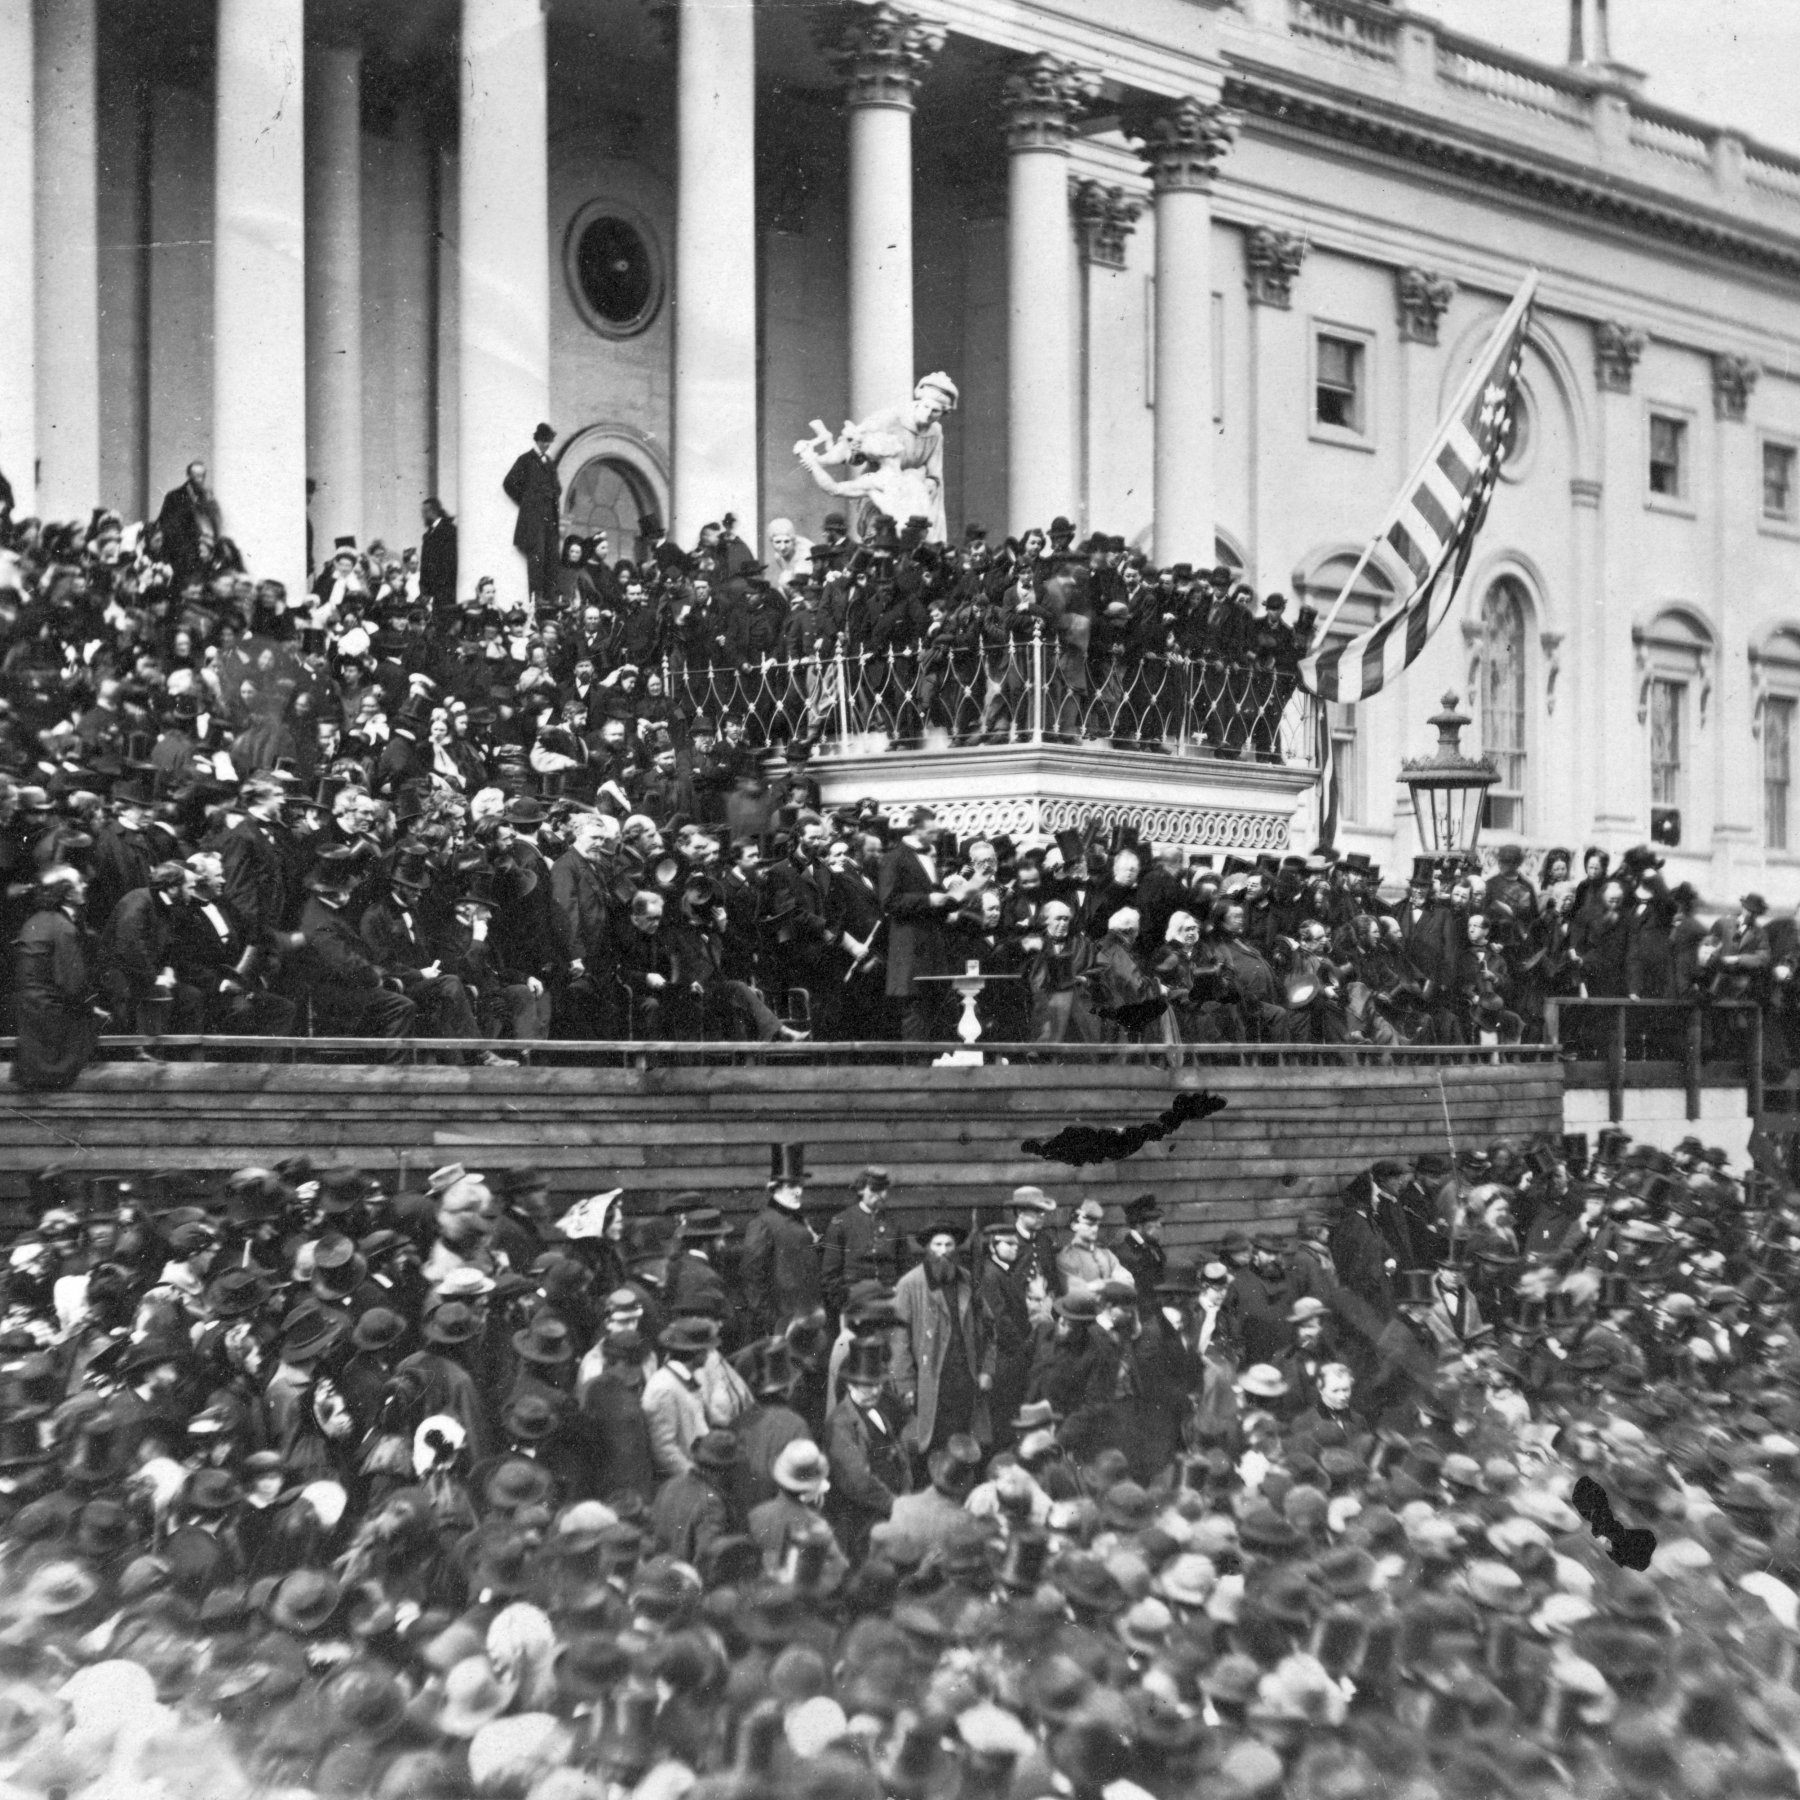 thesis statement of lincolns first inaugural address Thesis statement of lincolns first inaugural address thesis statement of lincolns first inaugural address abraham lincoln's first inaugural address – wikipedia.